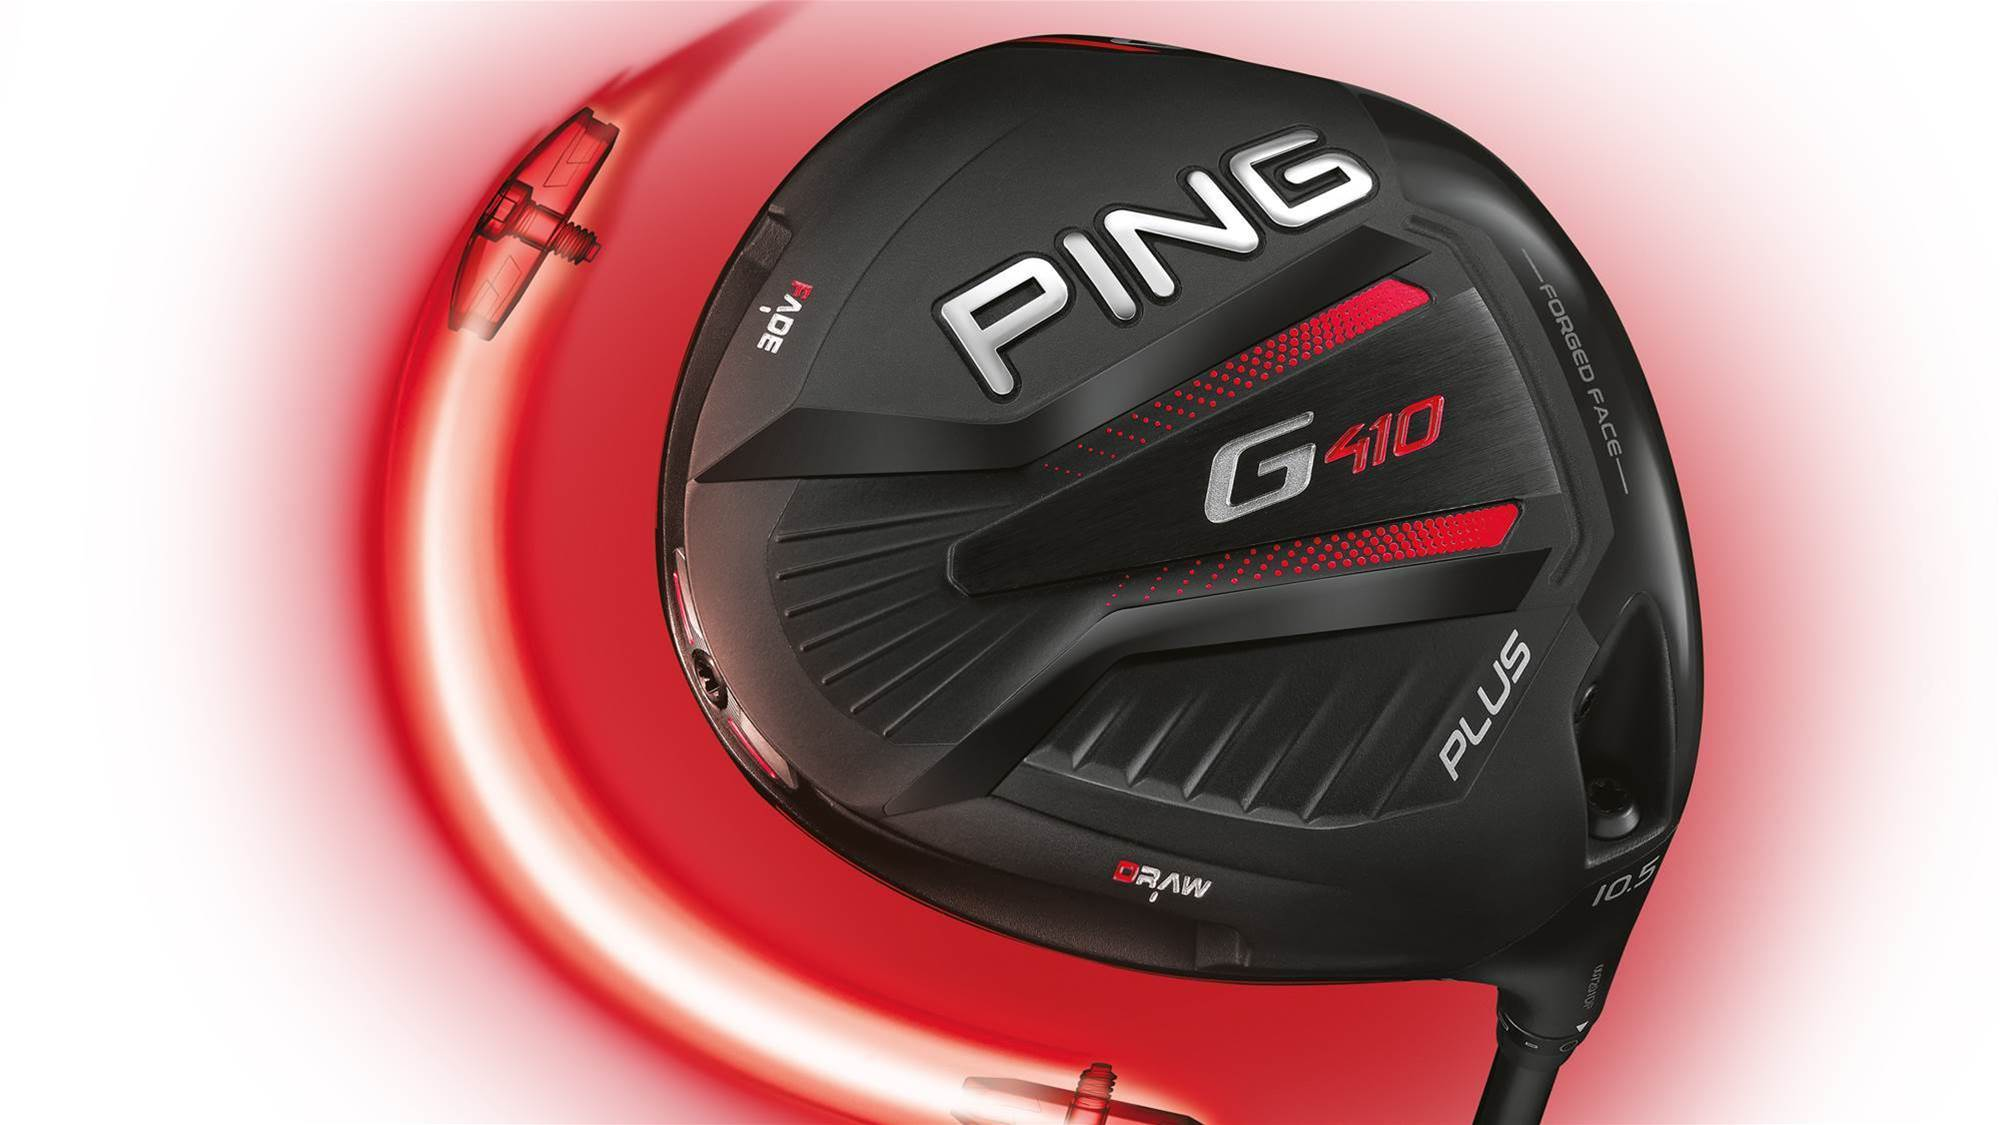 NEW GEAR: Ping launches G410 range